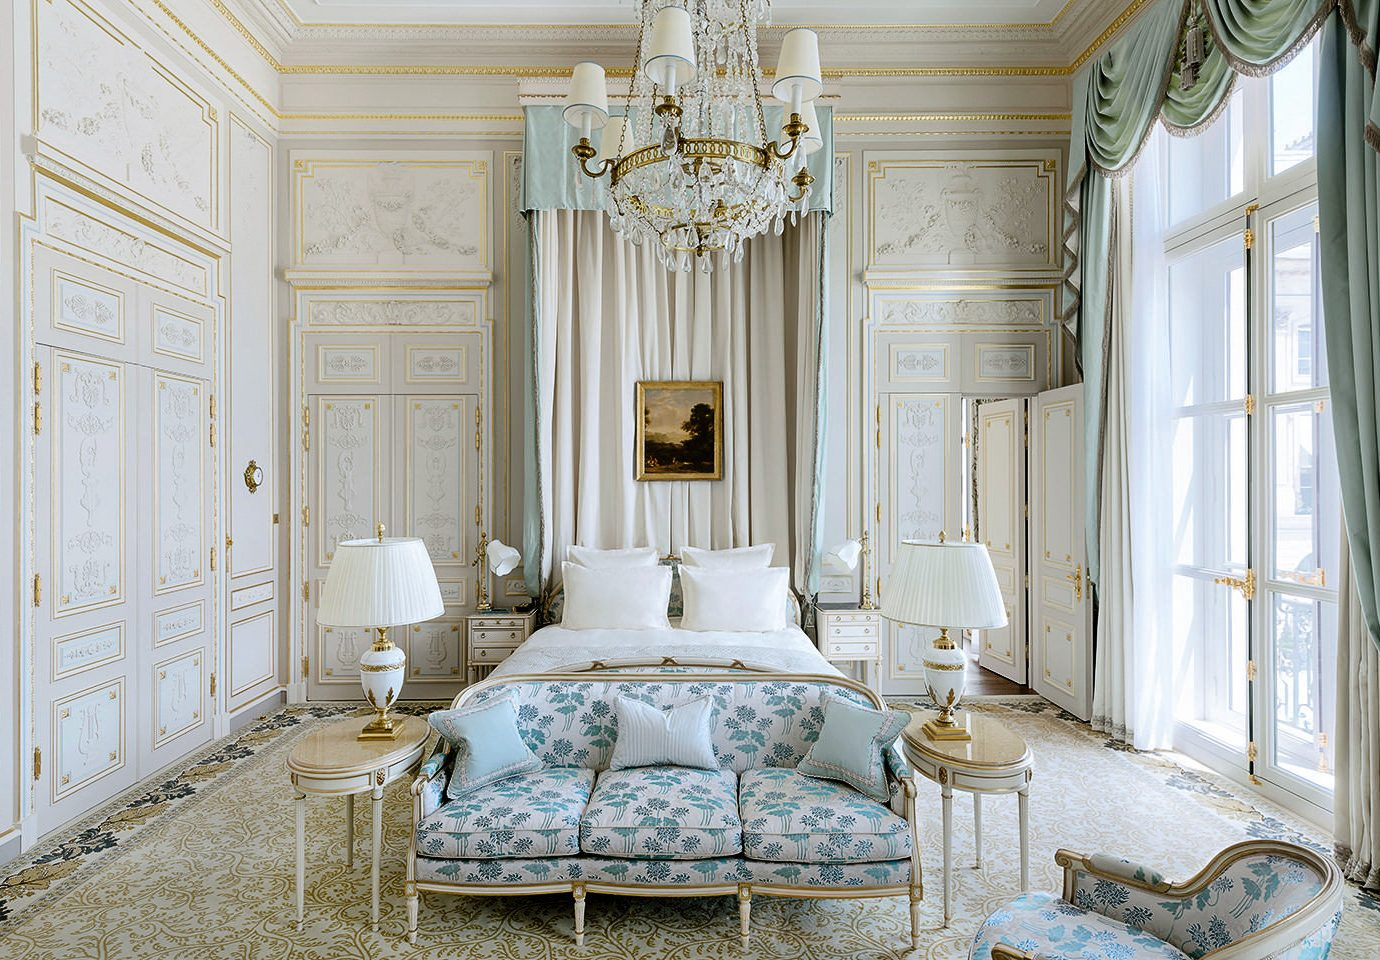 Hotels Romance Travel Tips indoor home room interior design wall window ceiling estate Architecture living room furniture window treatment Bedroom bed frame curtain molding column real estate window covering Suite house bed decor interior designer decorated